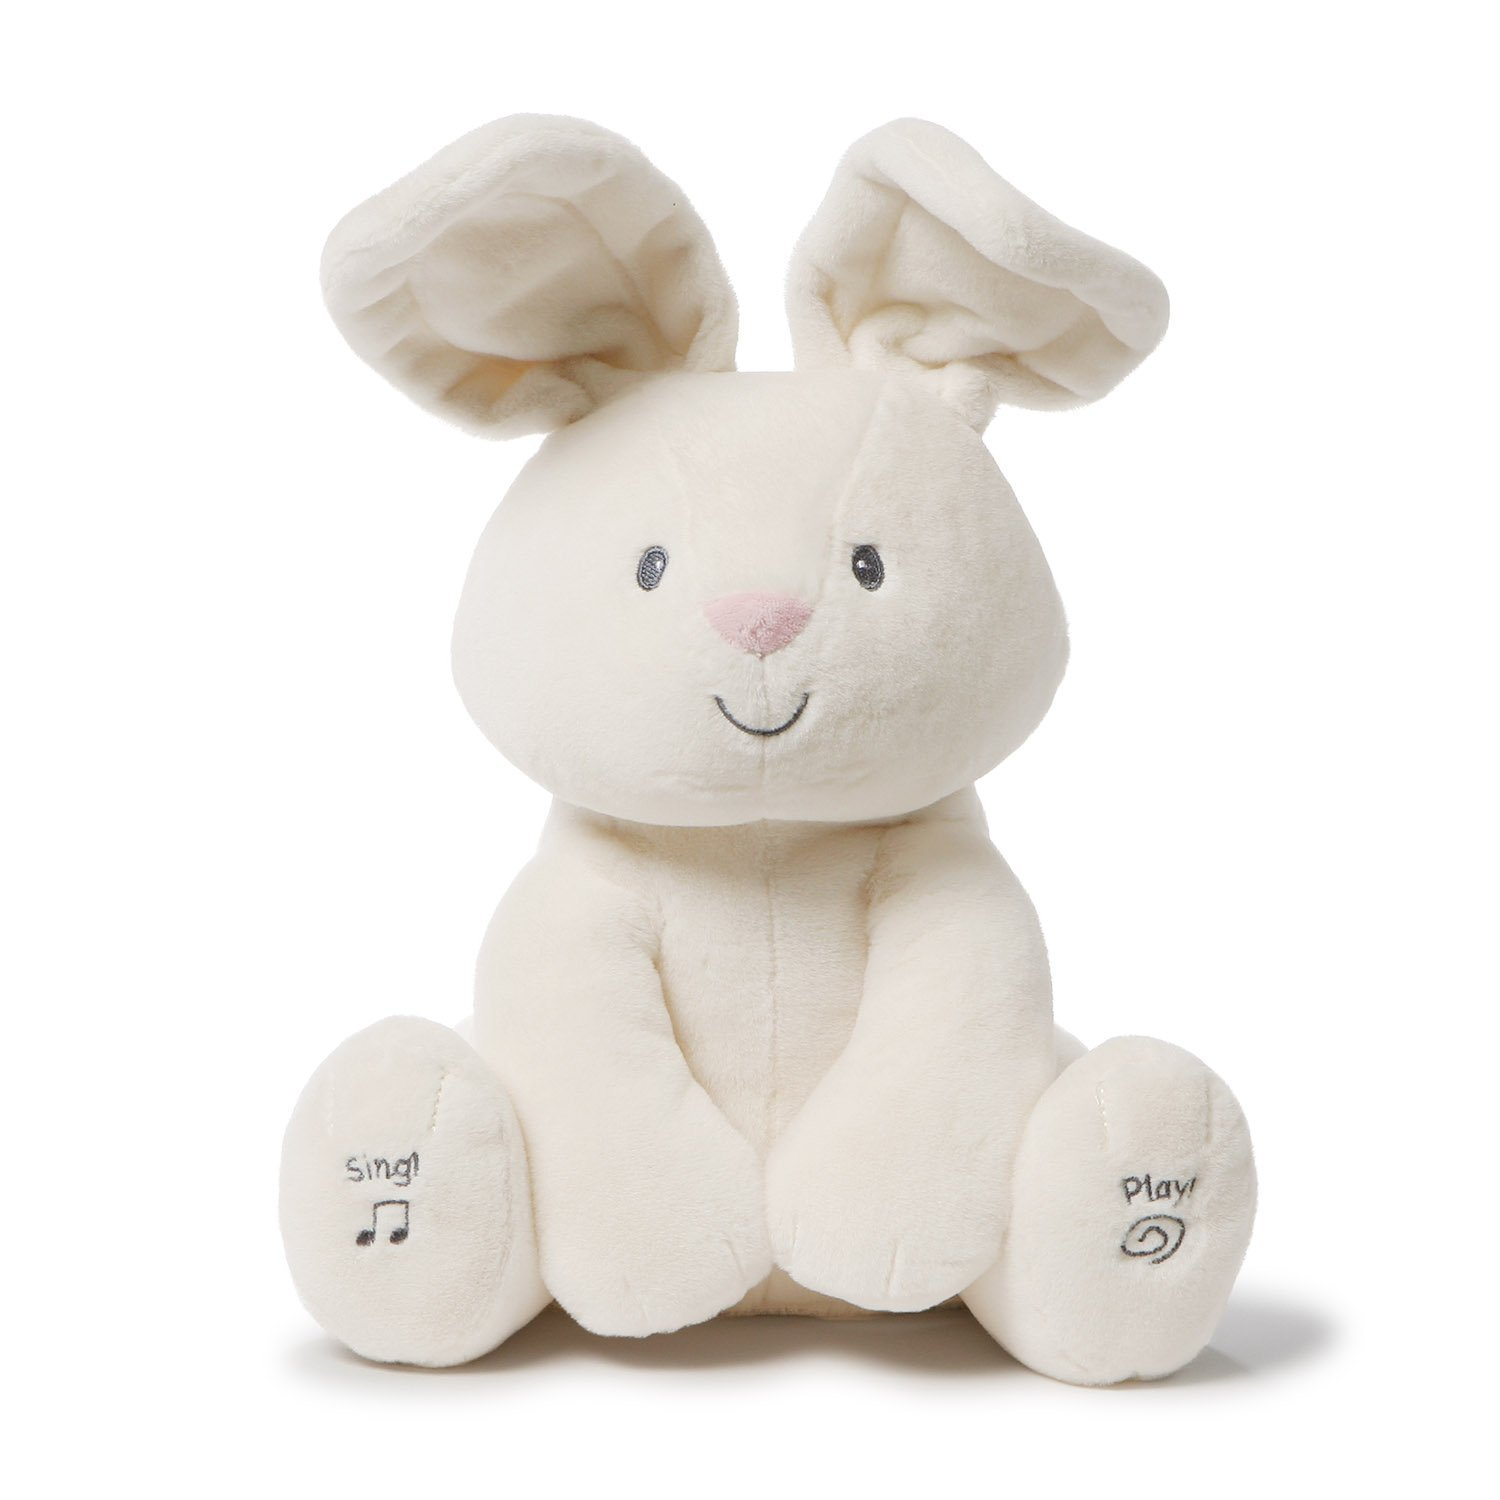 Gund Baby Flora The Bunny Animated Plush Stuffed Animal Toy, Cream, 12''